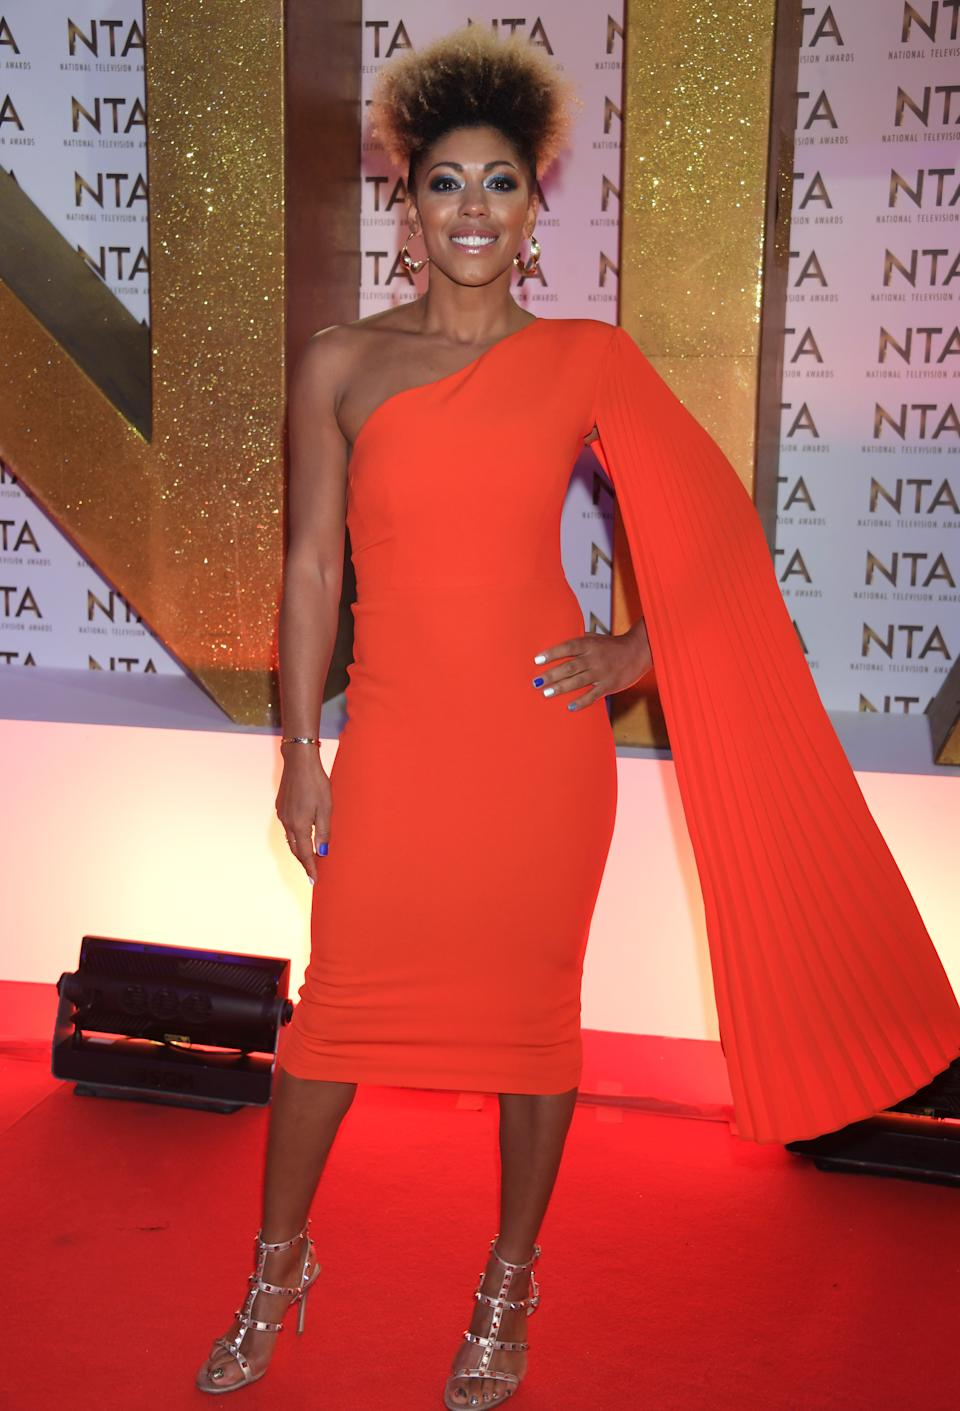 LONDON, ENGLAND - JANUARY 28:  Dr Zoe Williams attends the National Television Awards 2020 at The O2 Arena on January 28, 2020 in London, England. (Photo by David M. Benett/Dave Benett/Getty Images)